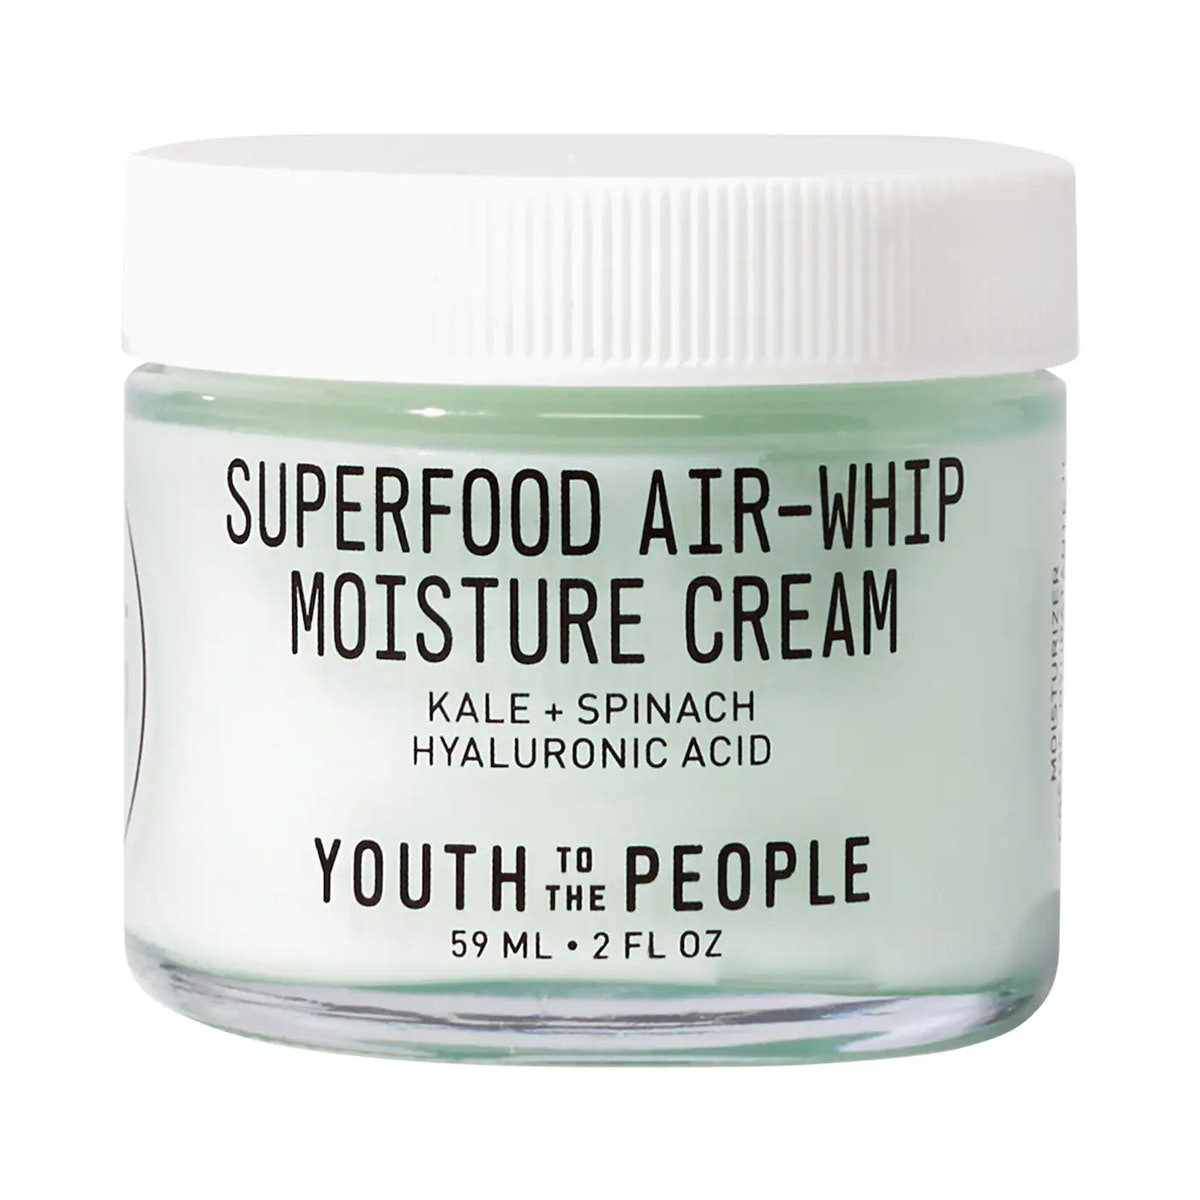 Superfood Air-Whip Moisturizer with Hyaluronic Acid